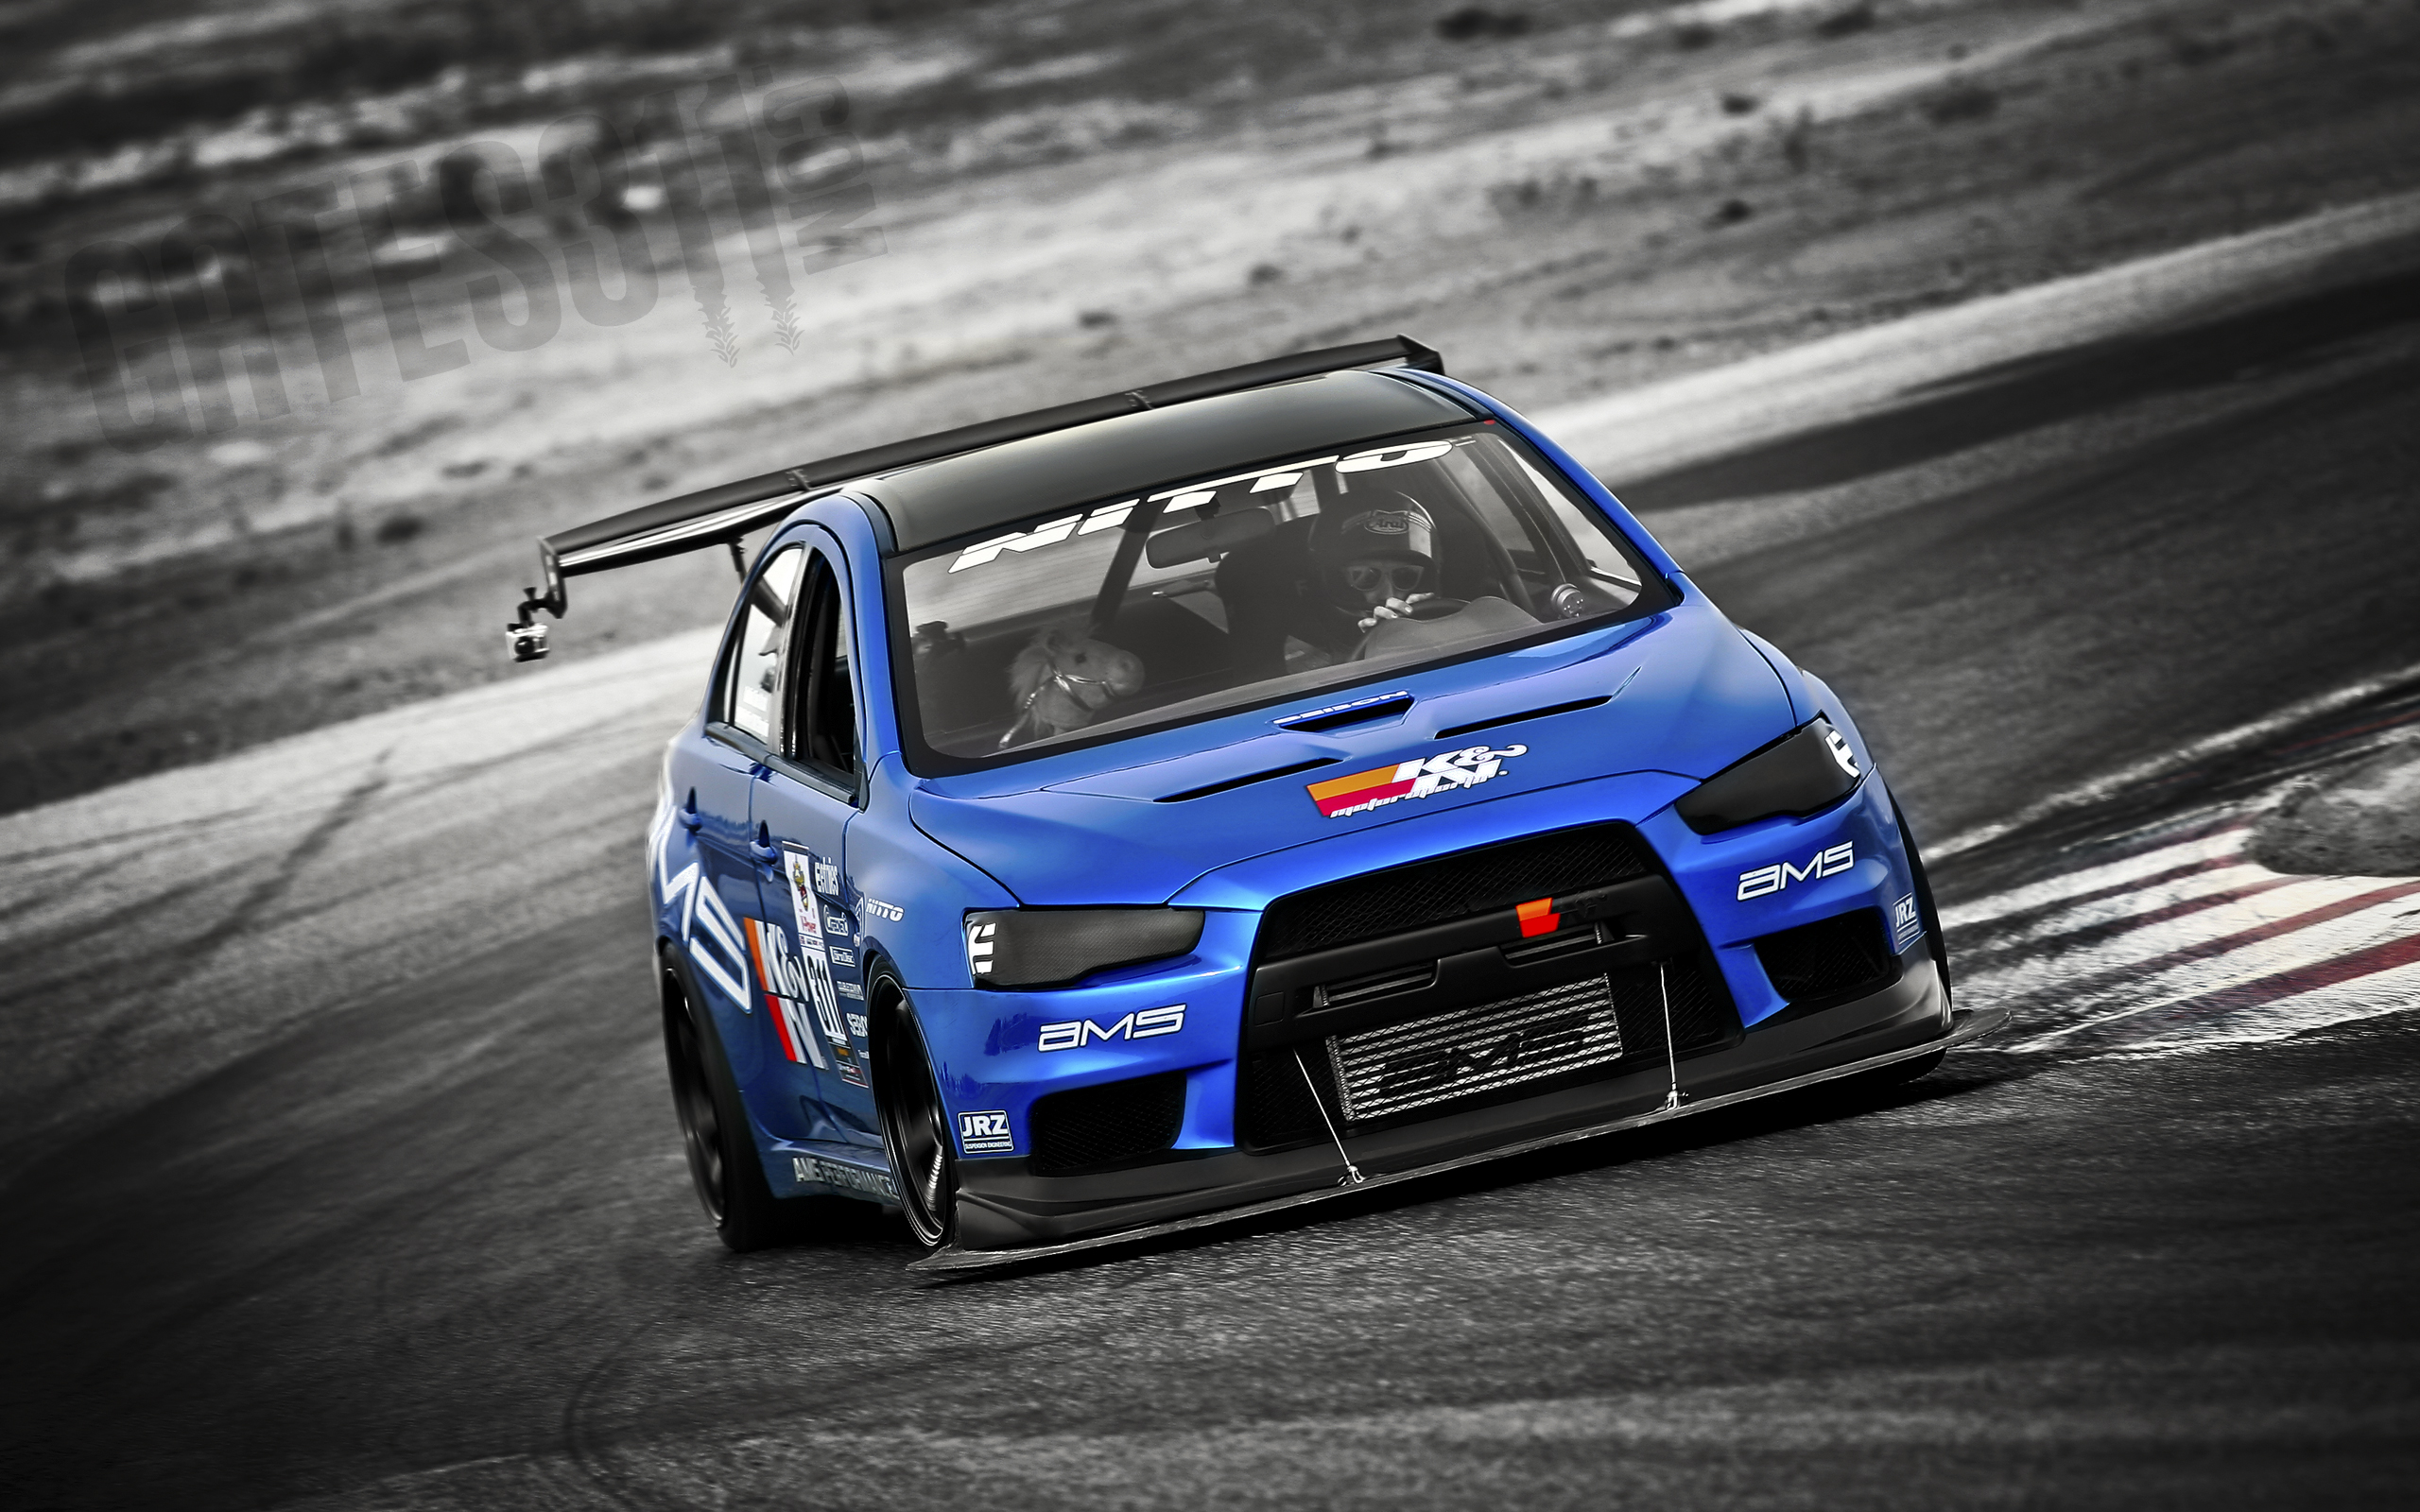 Great shot of the AMS Evo X.